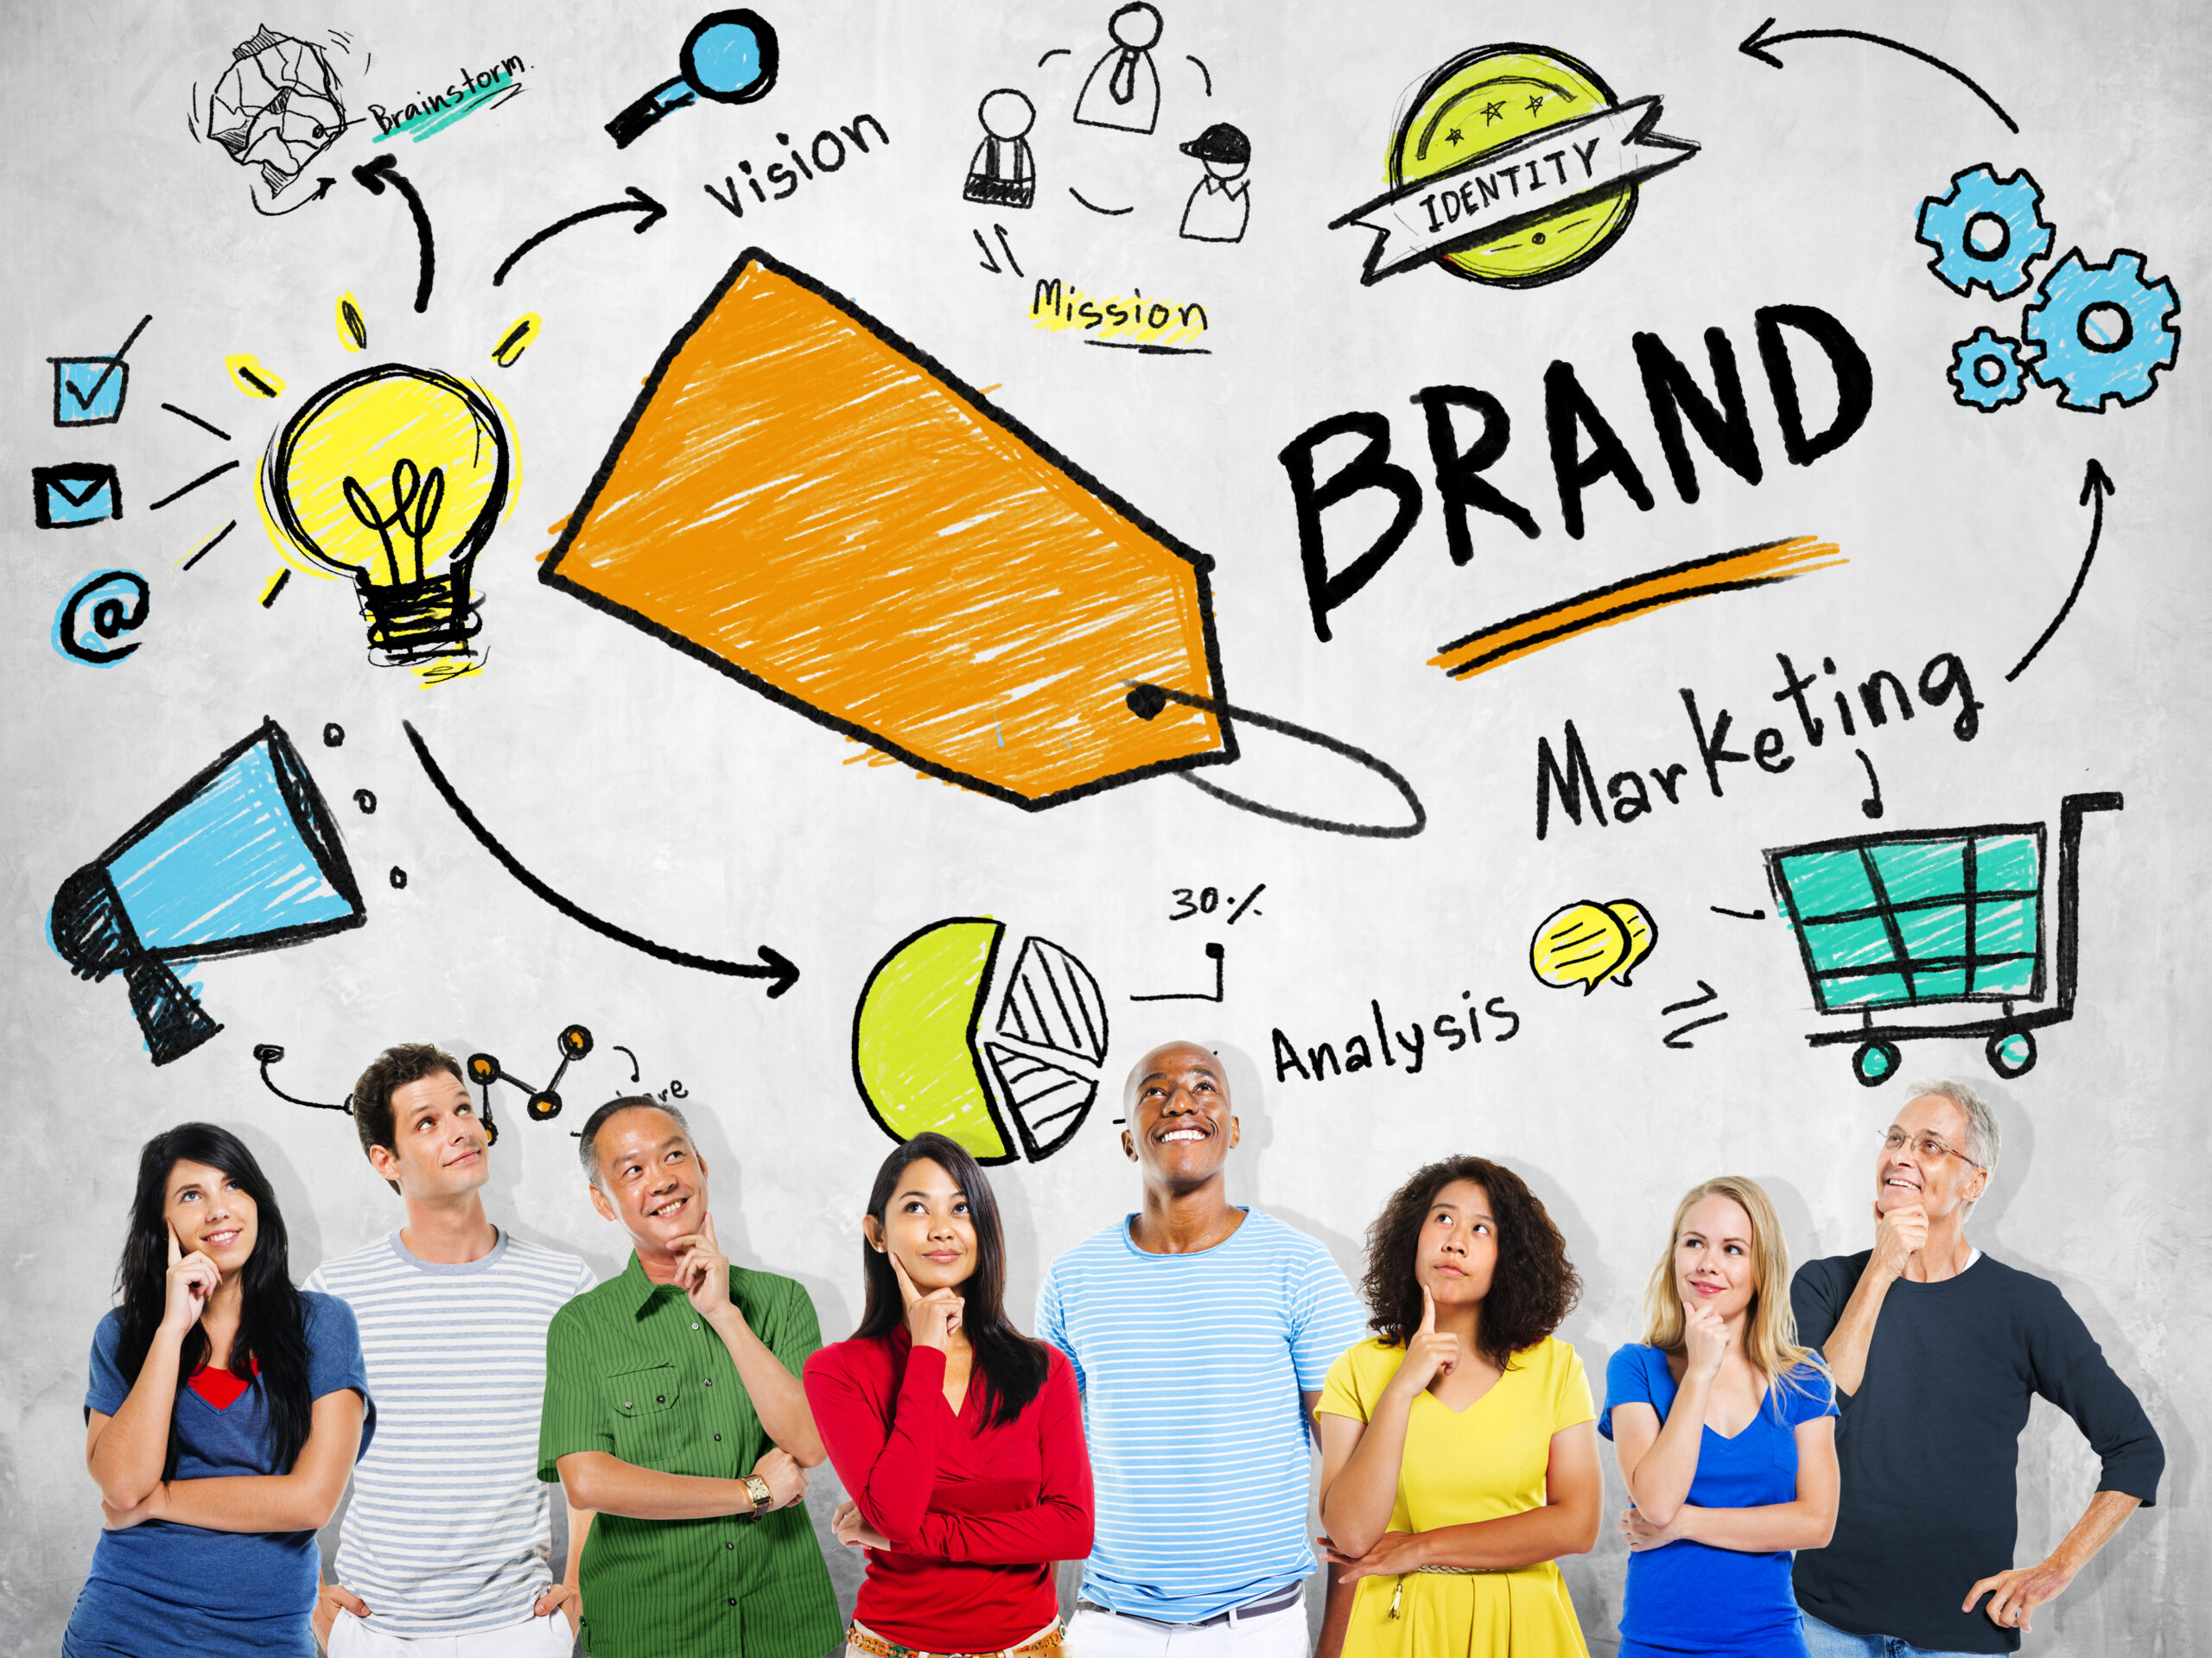 Tips To Make Your Branding Awesome So You Attract Qualified Customers And Achieve Your Goals.